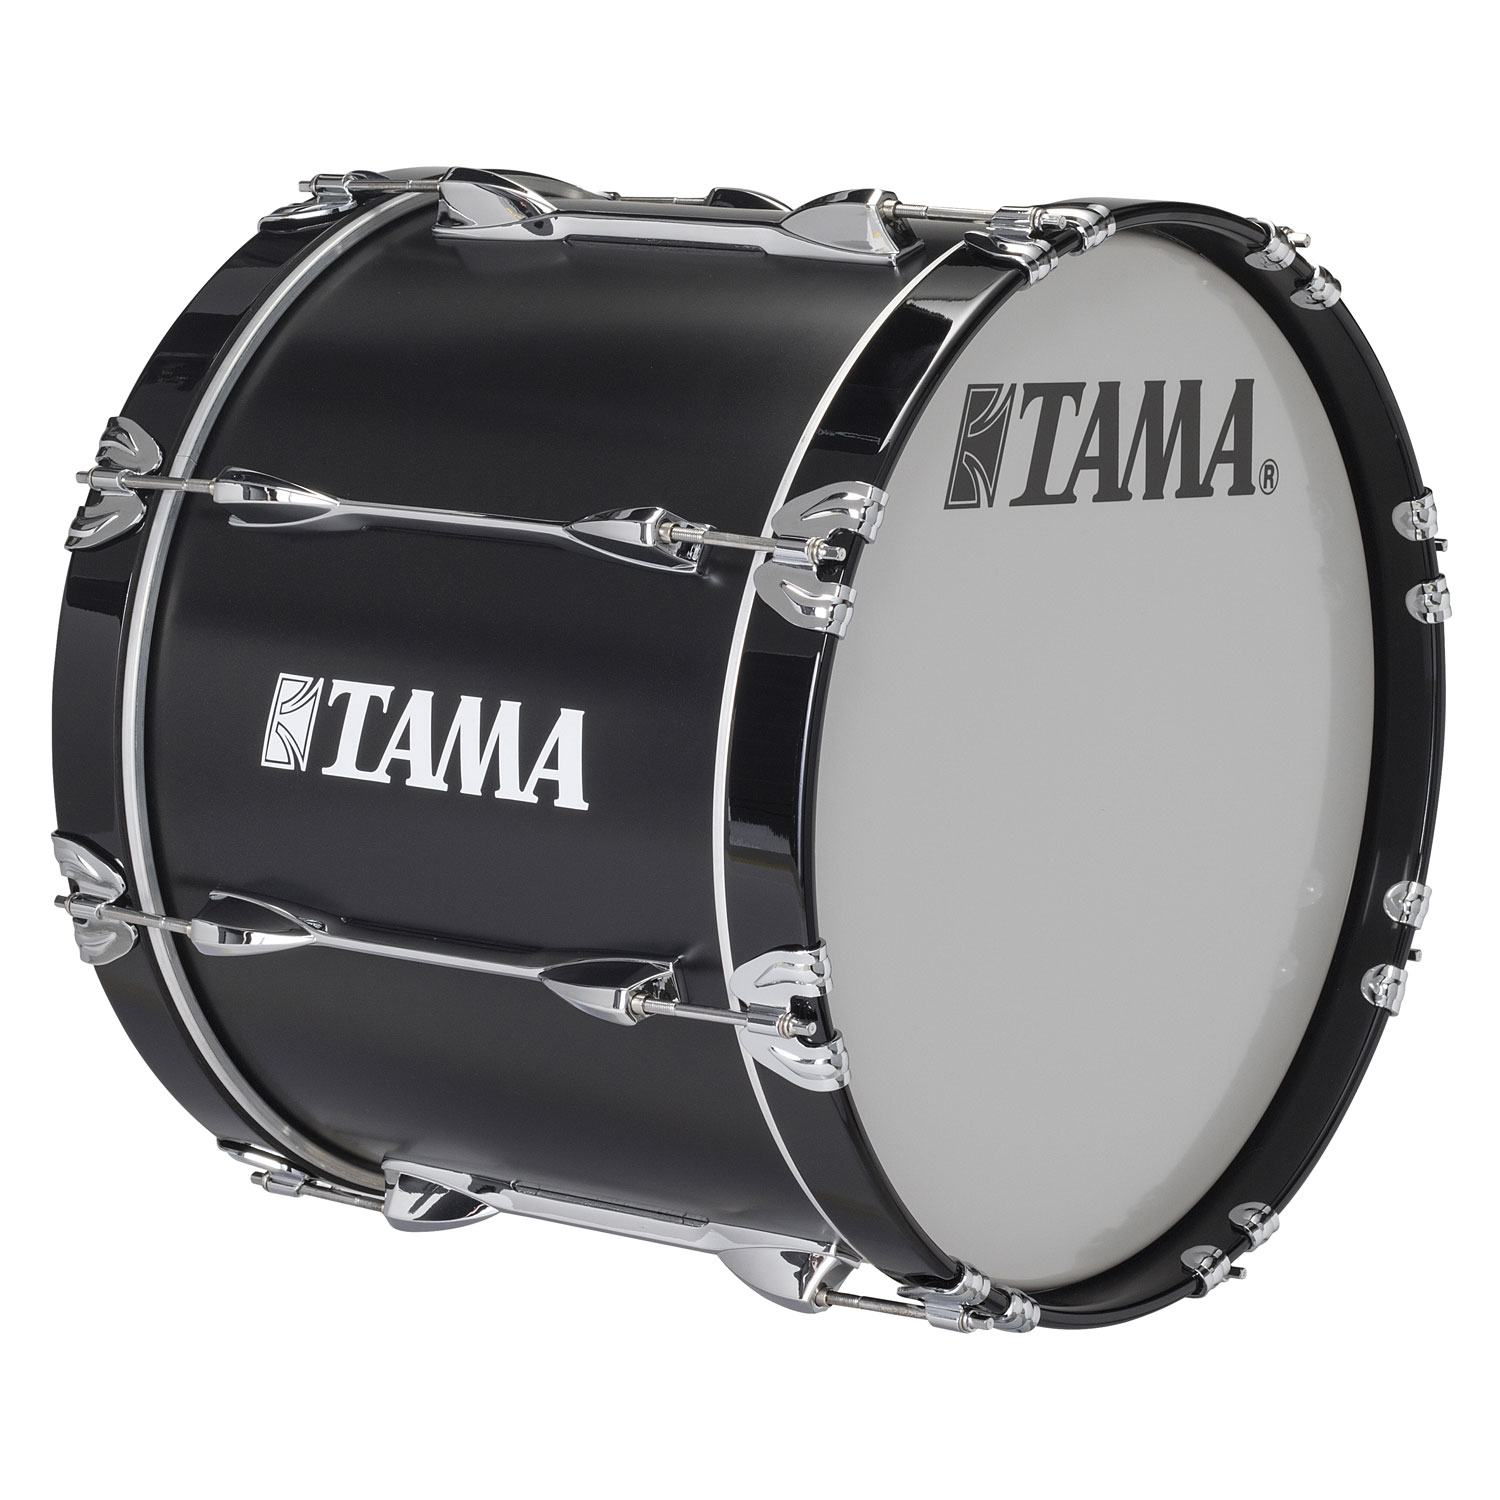 "Tama 22"" StarLight Marching Bass Drum in Satin Black Lacquer"